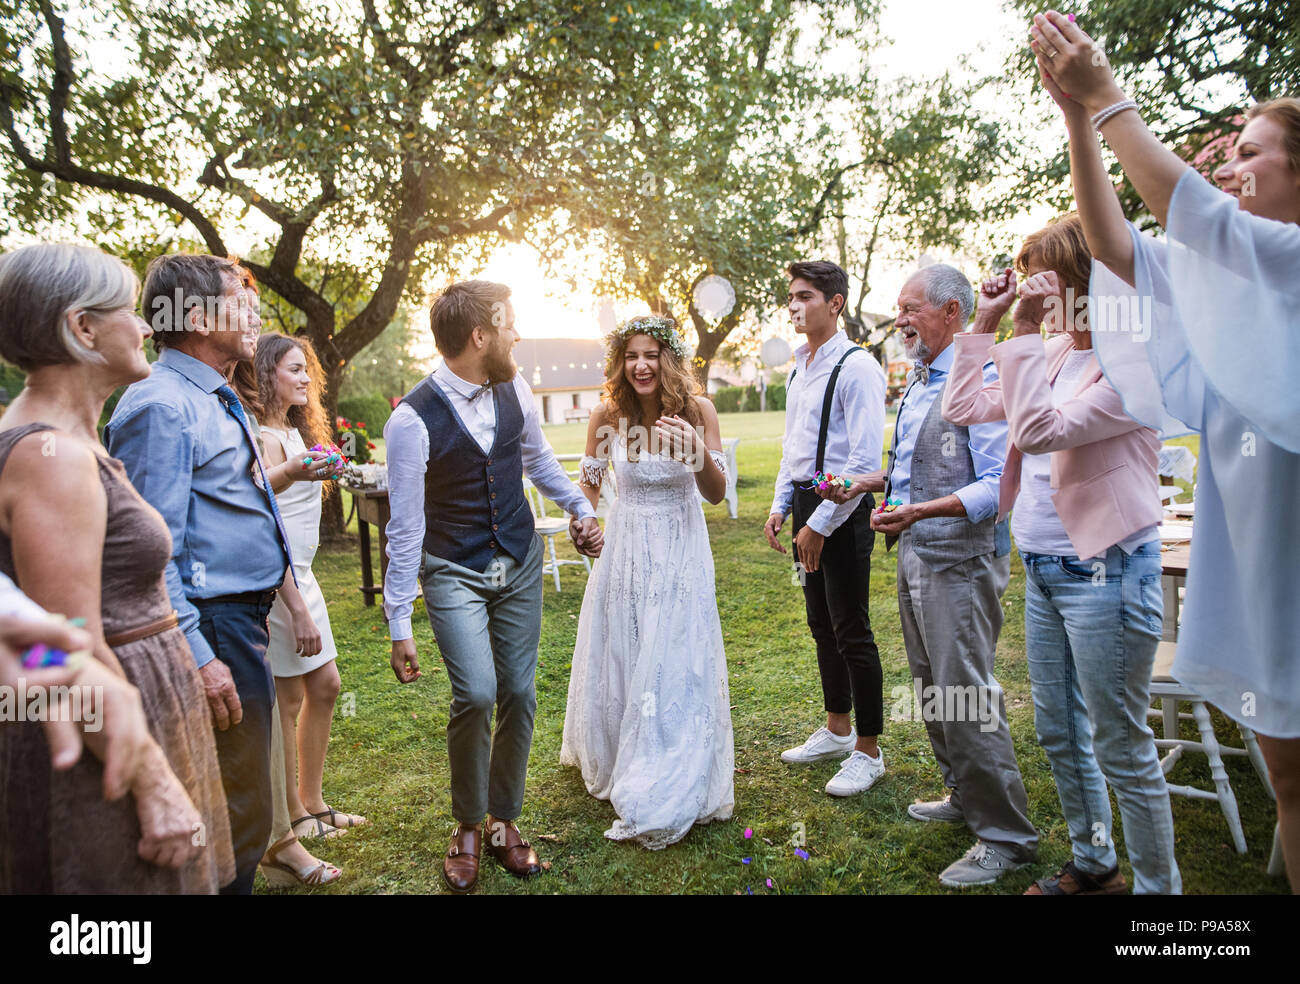 Bride, groom and guests at wedding reception outside in the backyard. - Stock Image